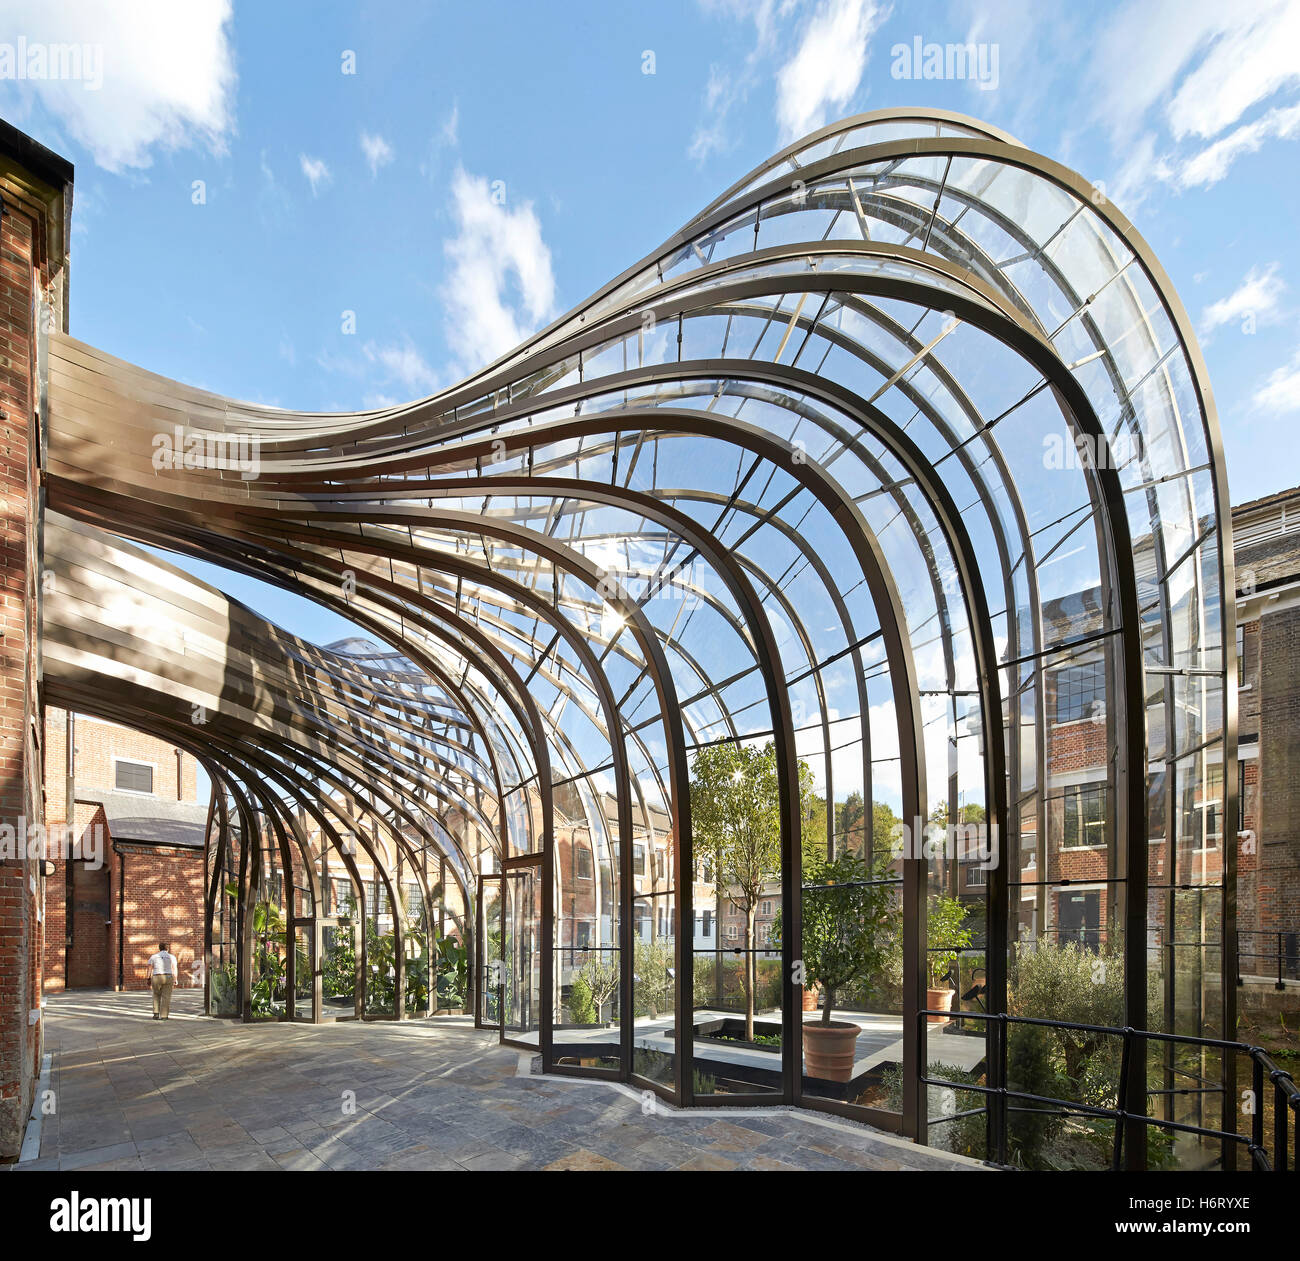 Curved Architecture Curved Greenhouse Structures Forming Archway Bombay Sapphire